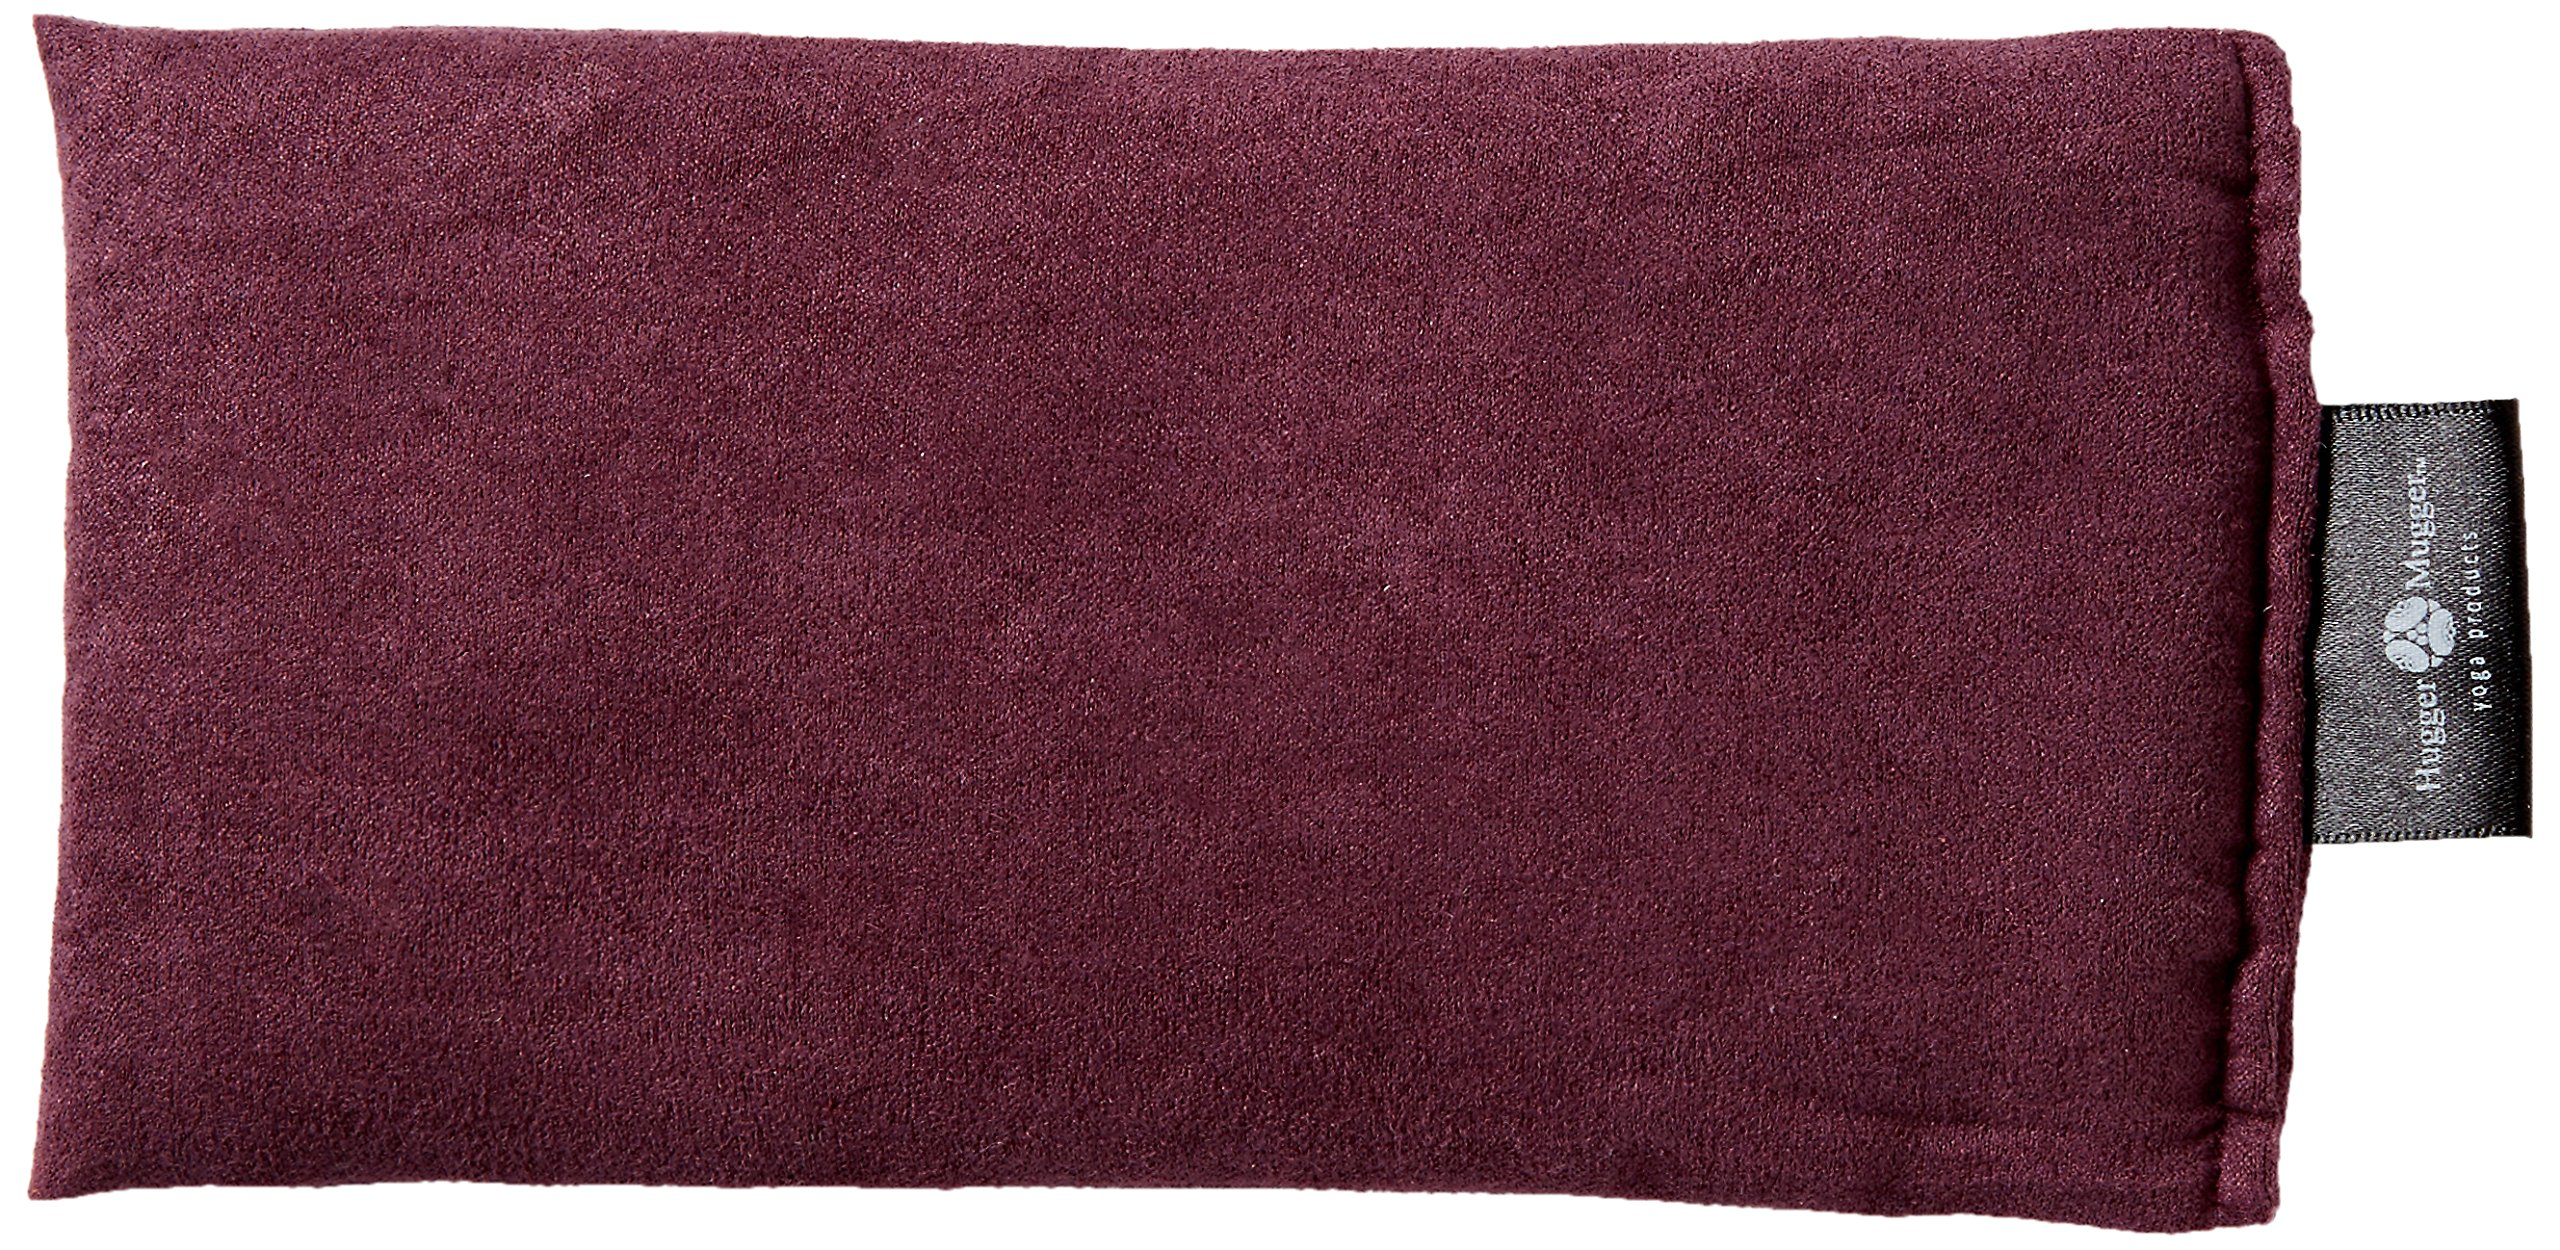 Hugger Mugger Peachskin Yoga Relaxation Eye Bag, Plum